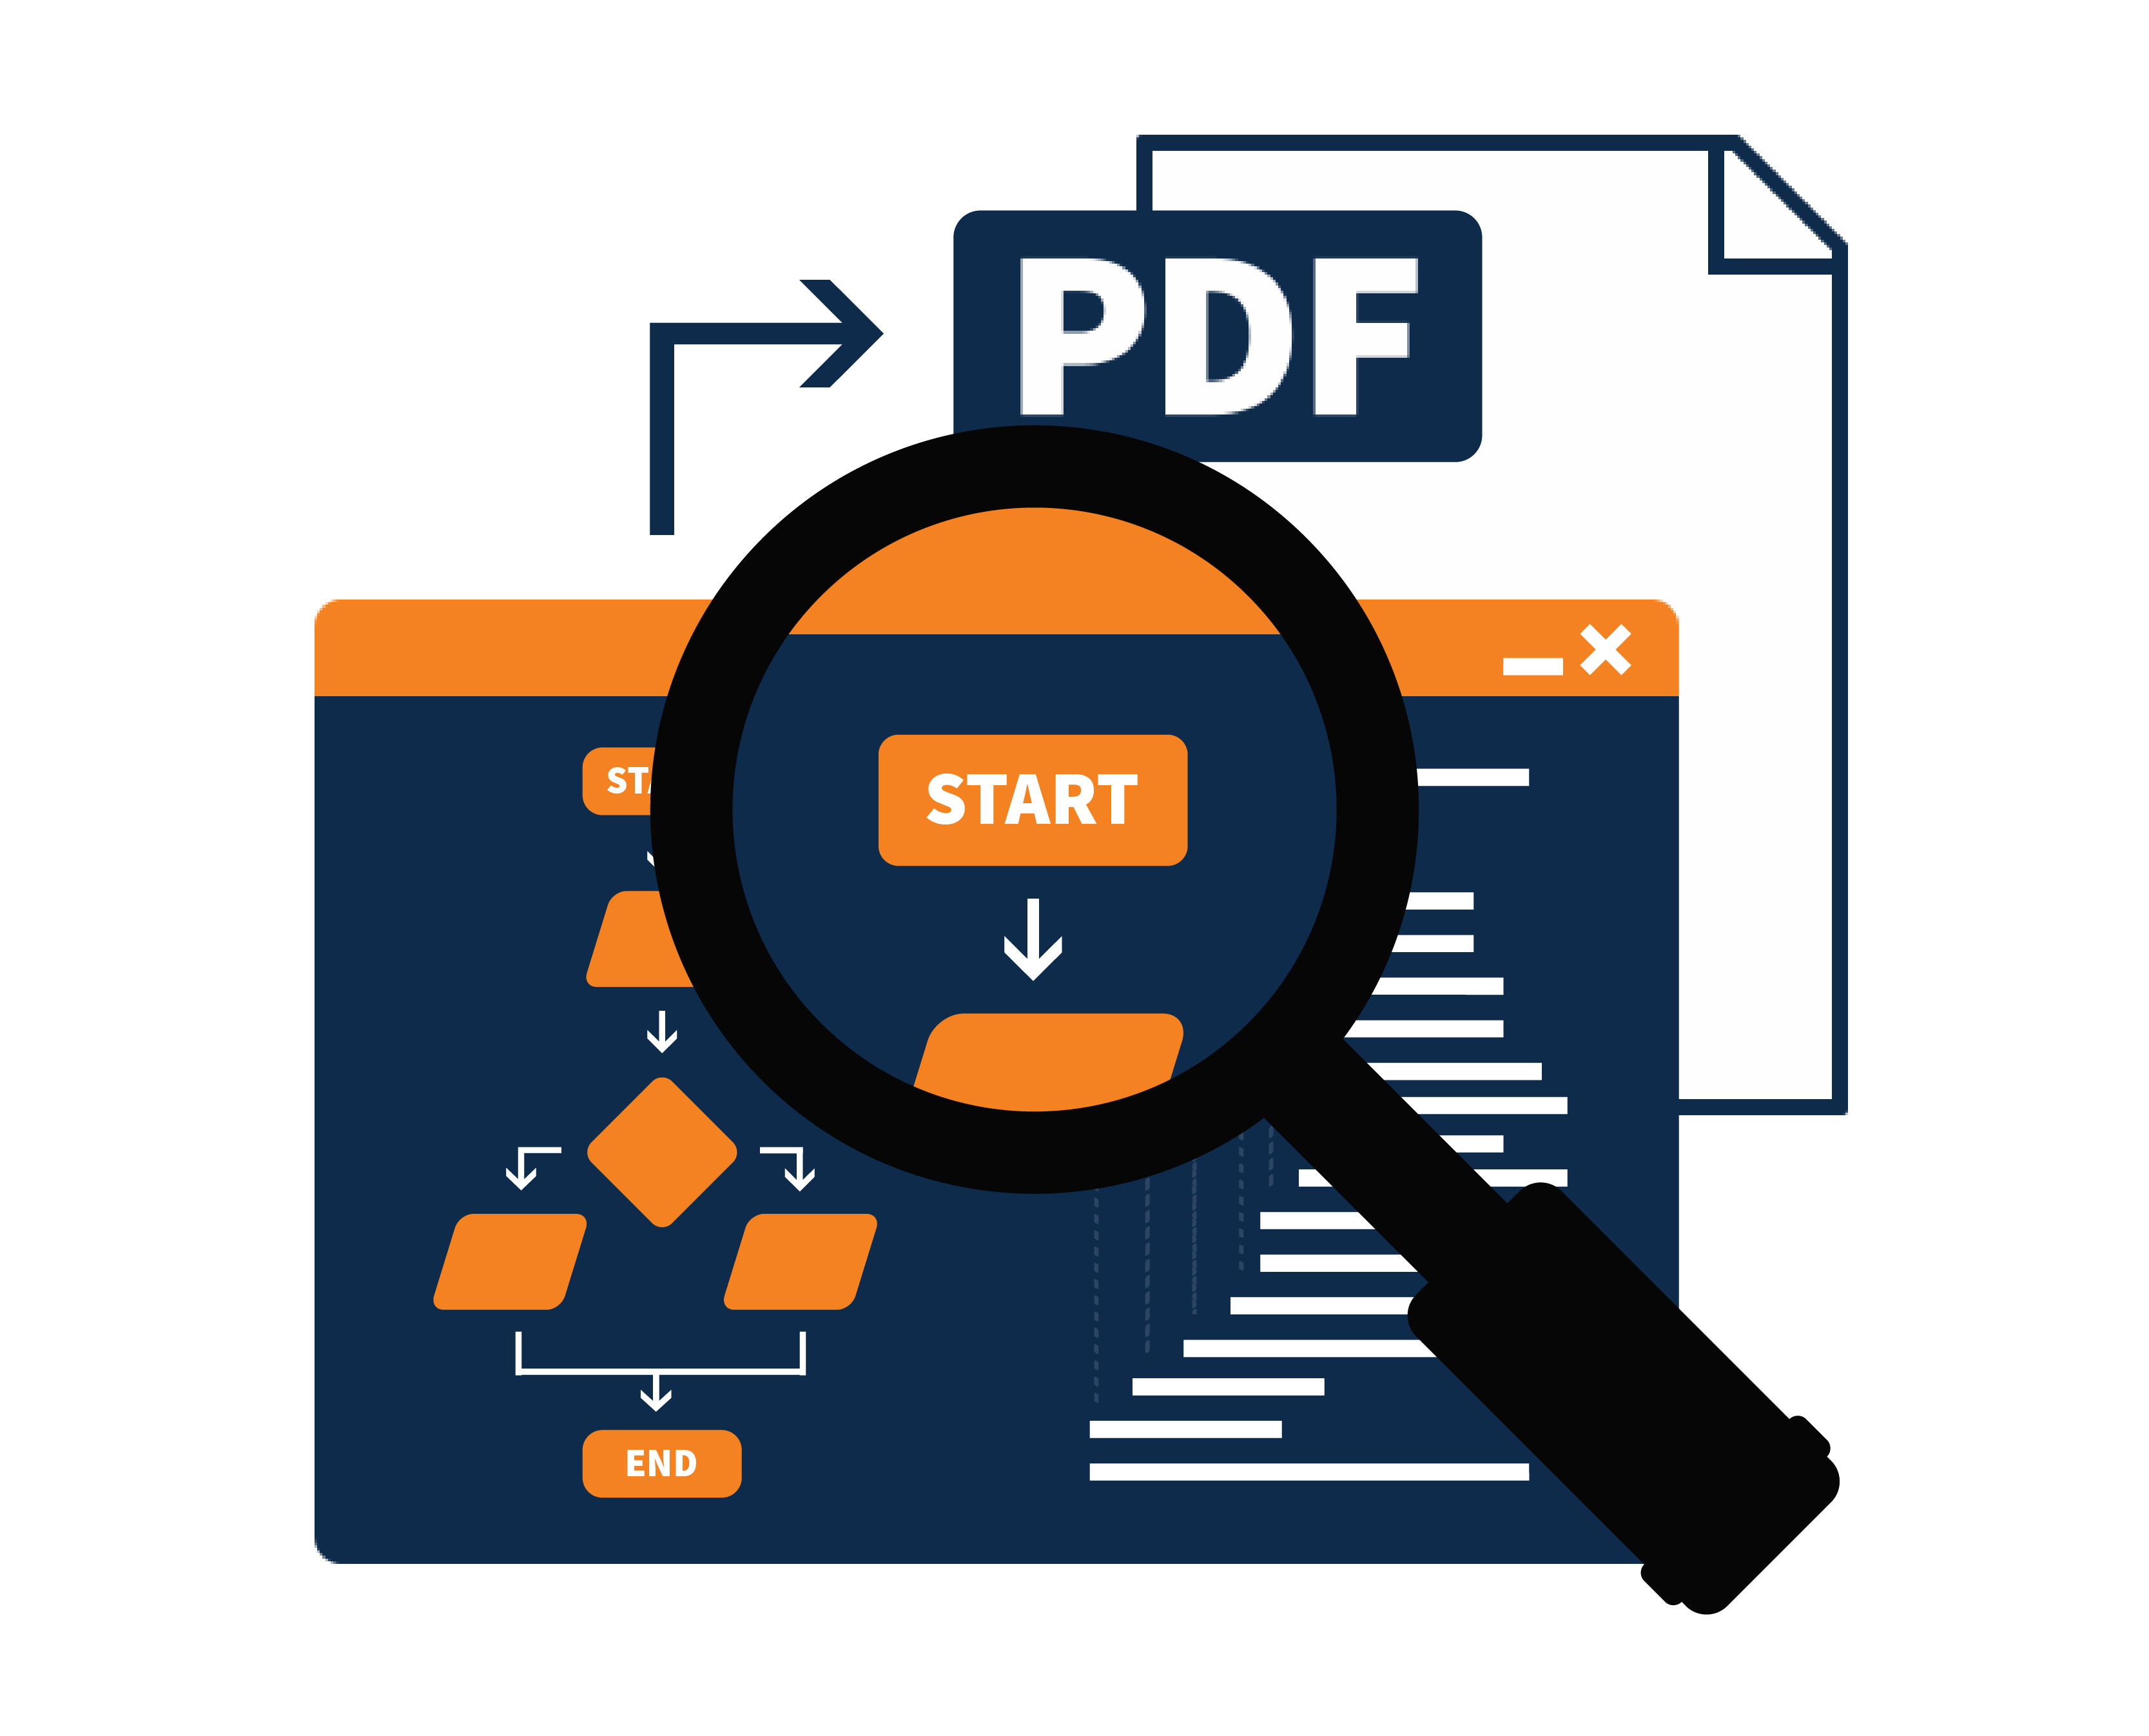 Harness The Power Of Pdf With The Itext Pdf Engine